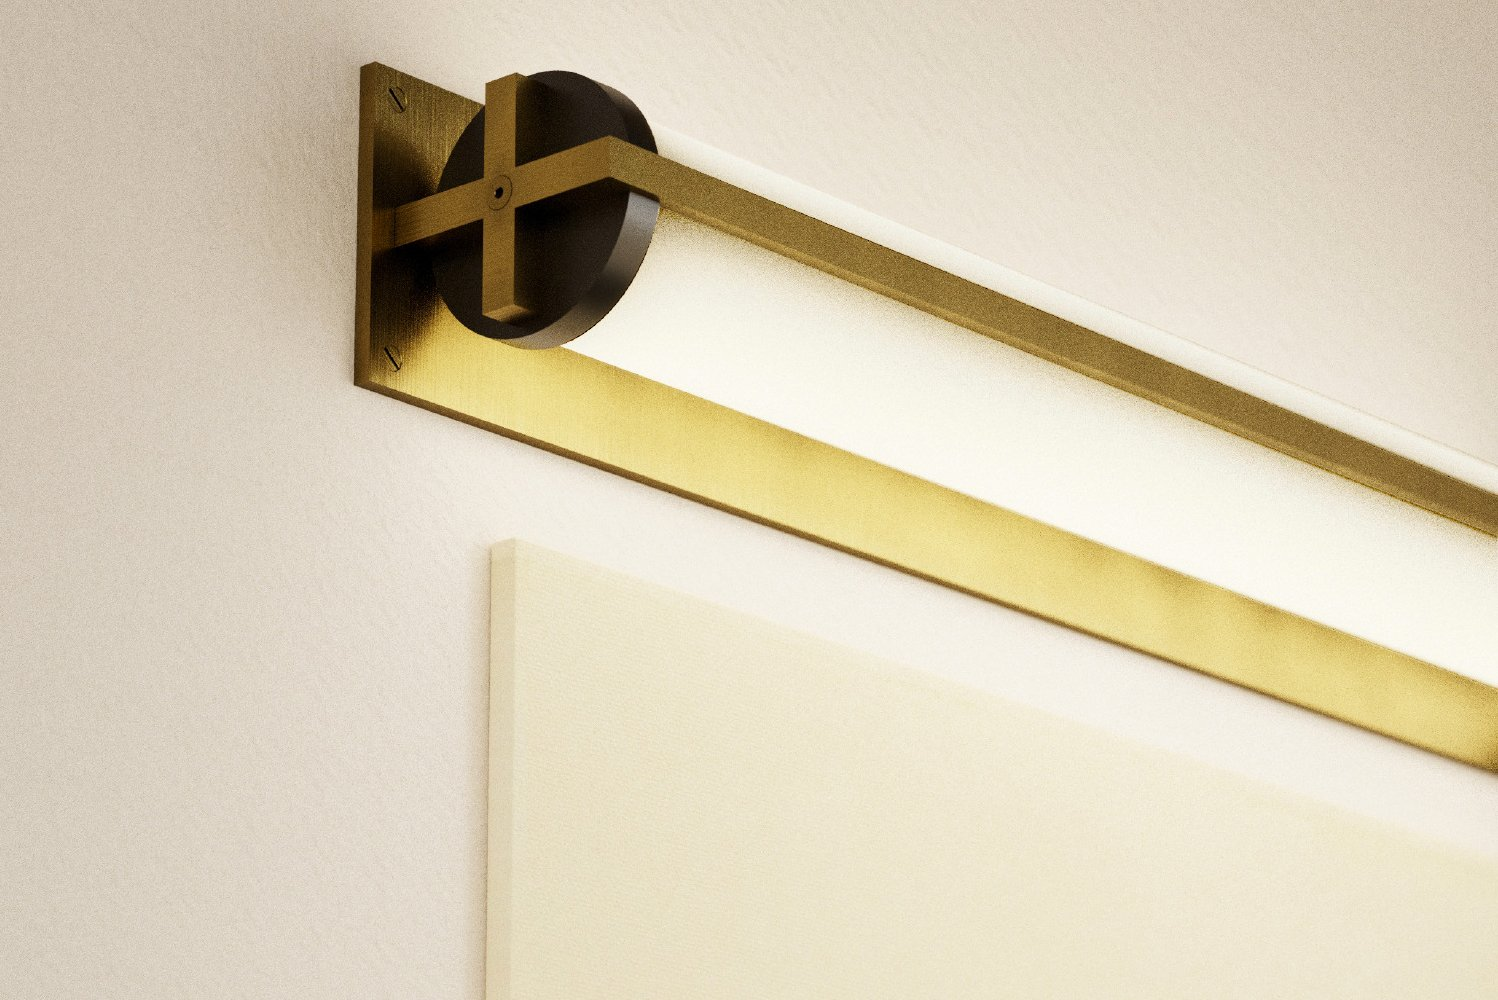 The rectangular backplate is unique to the wall sconce and is designed to allow vertical and horizontal mounting.